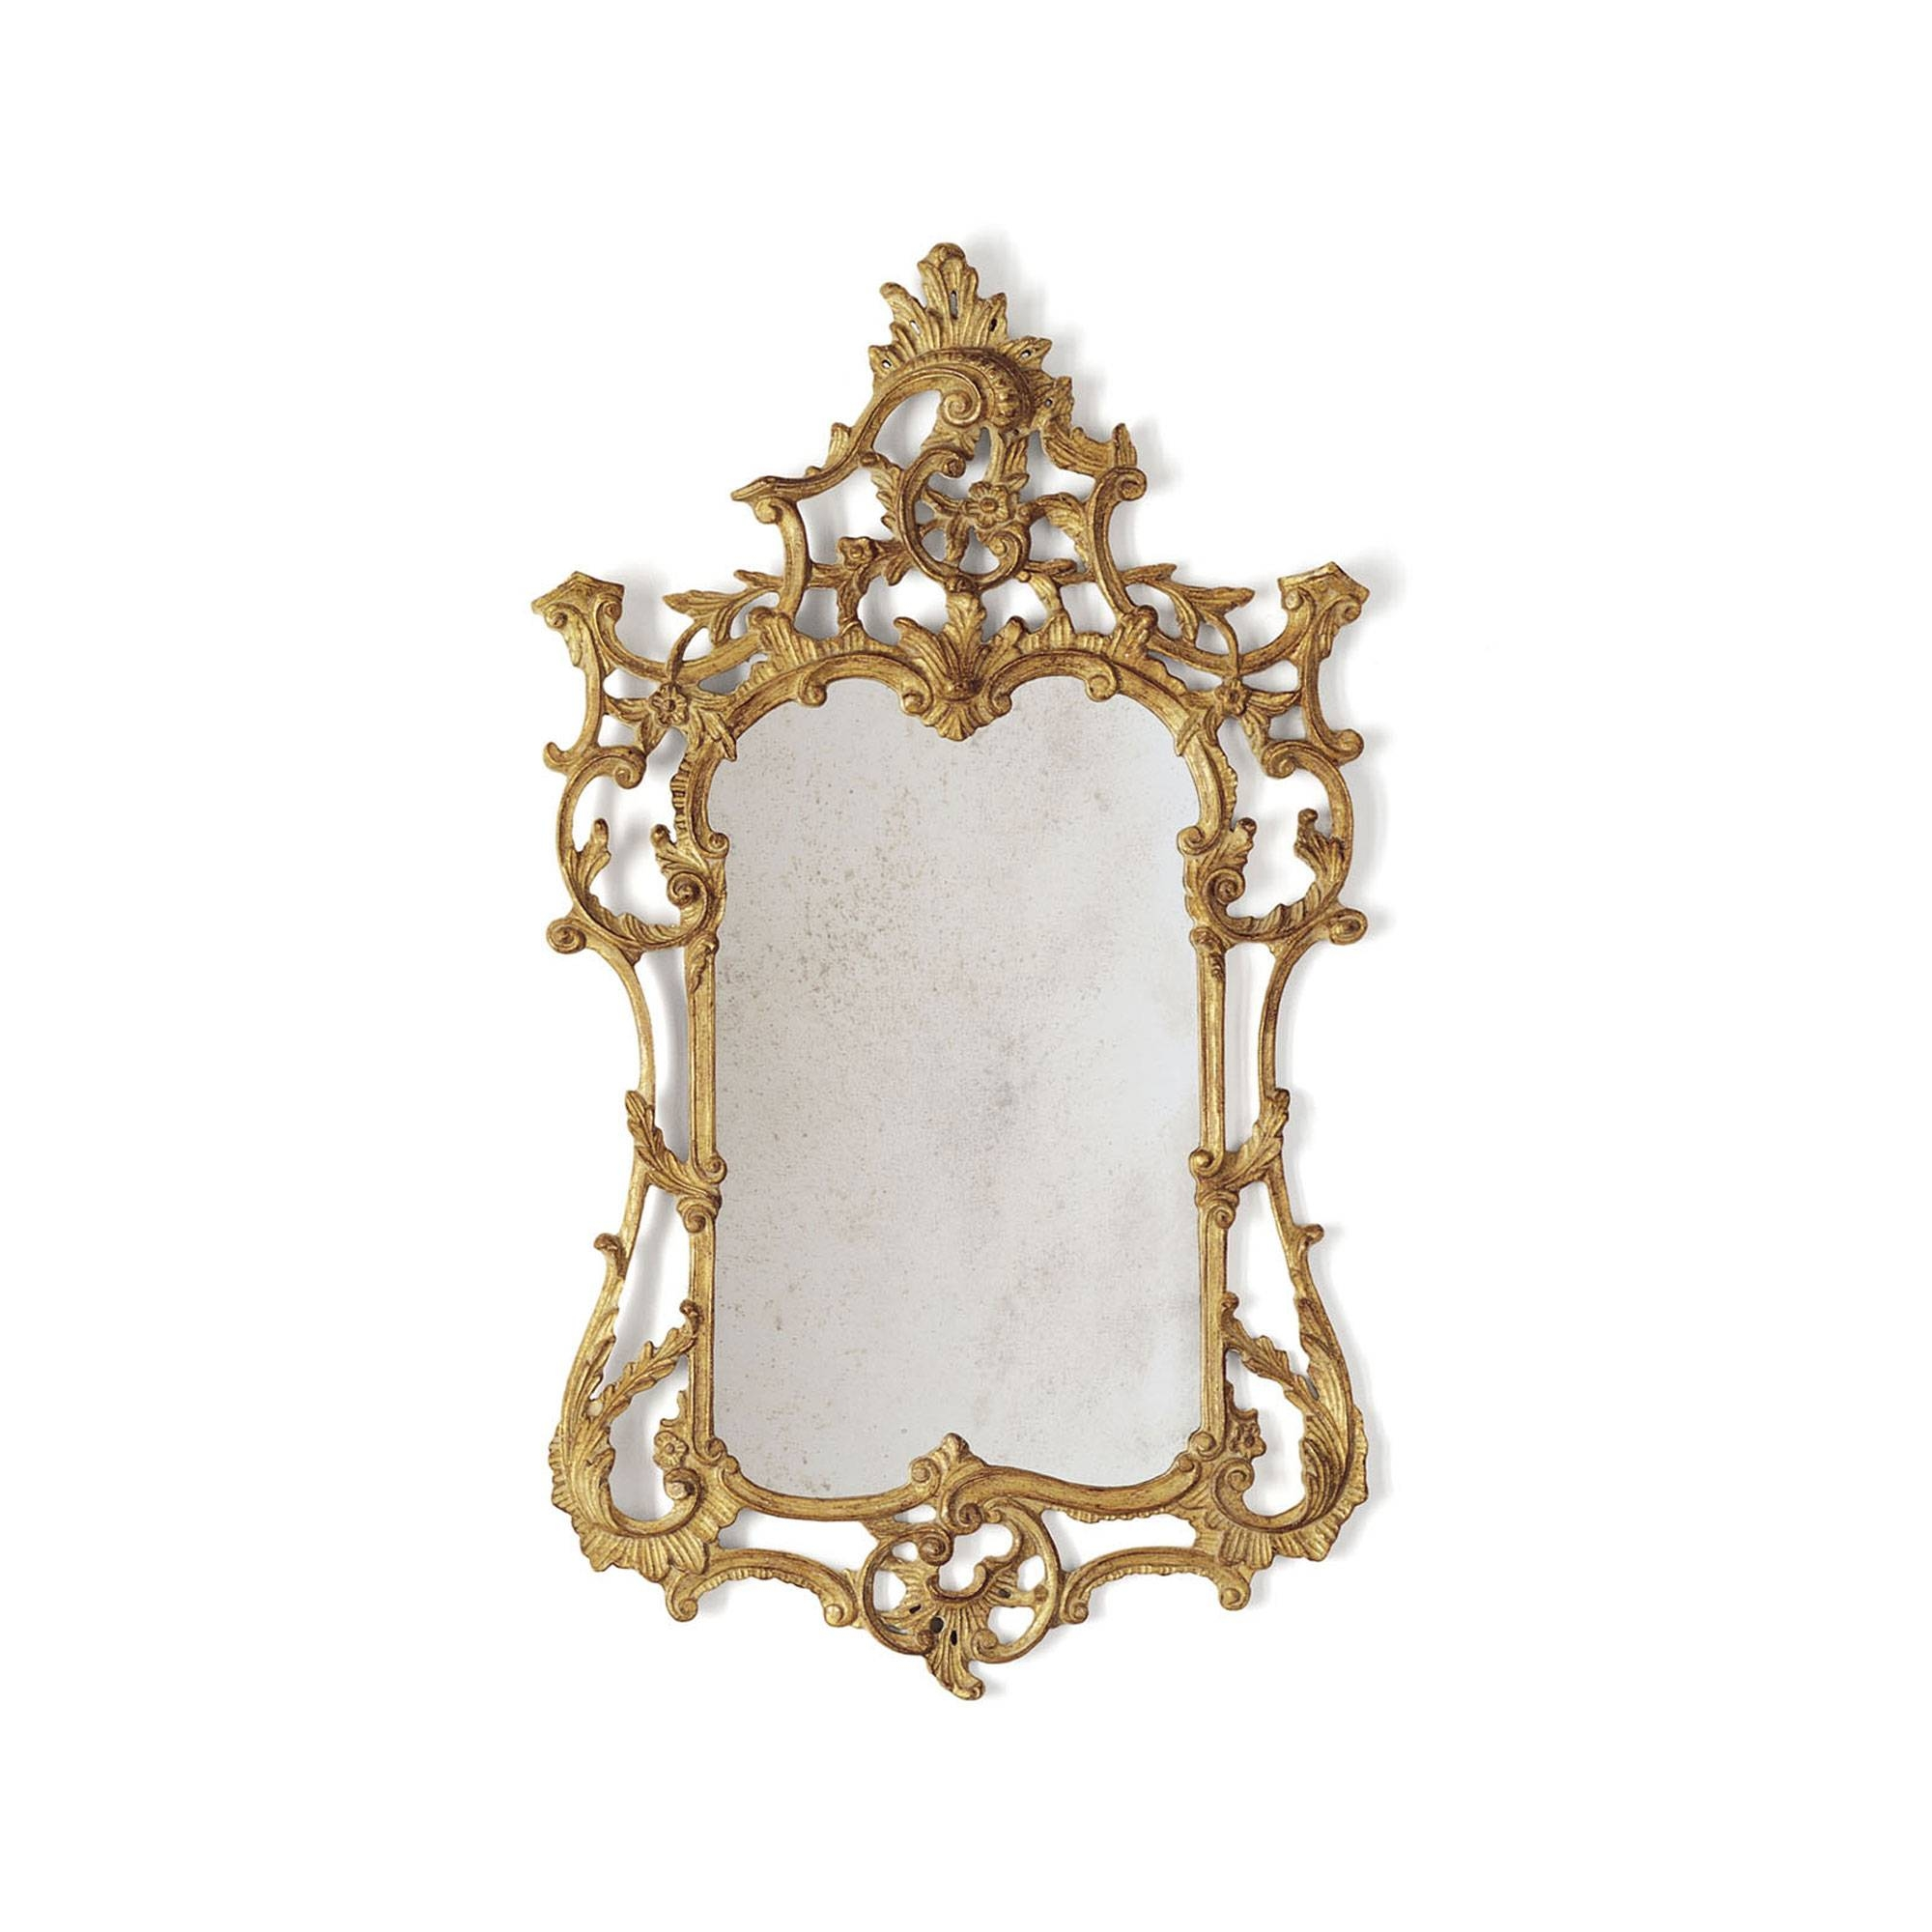 Rococo Mirror | Hand Carved Mirror | Beaumont & Fletcher pertaining to Gold Rococo Mirrors (Image 24 of 25)